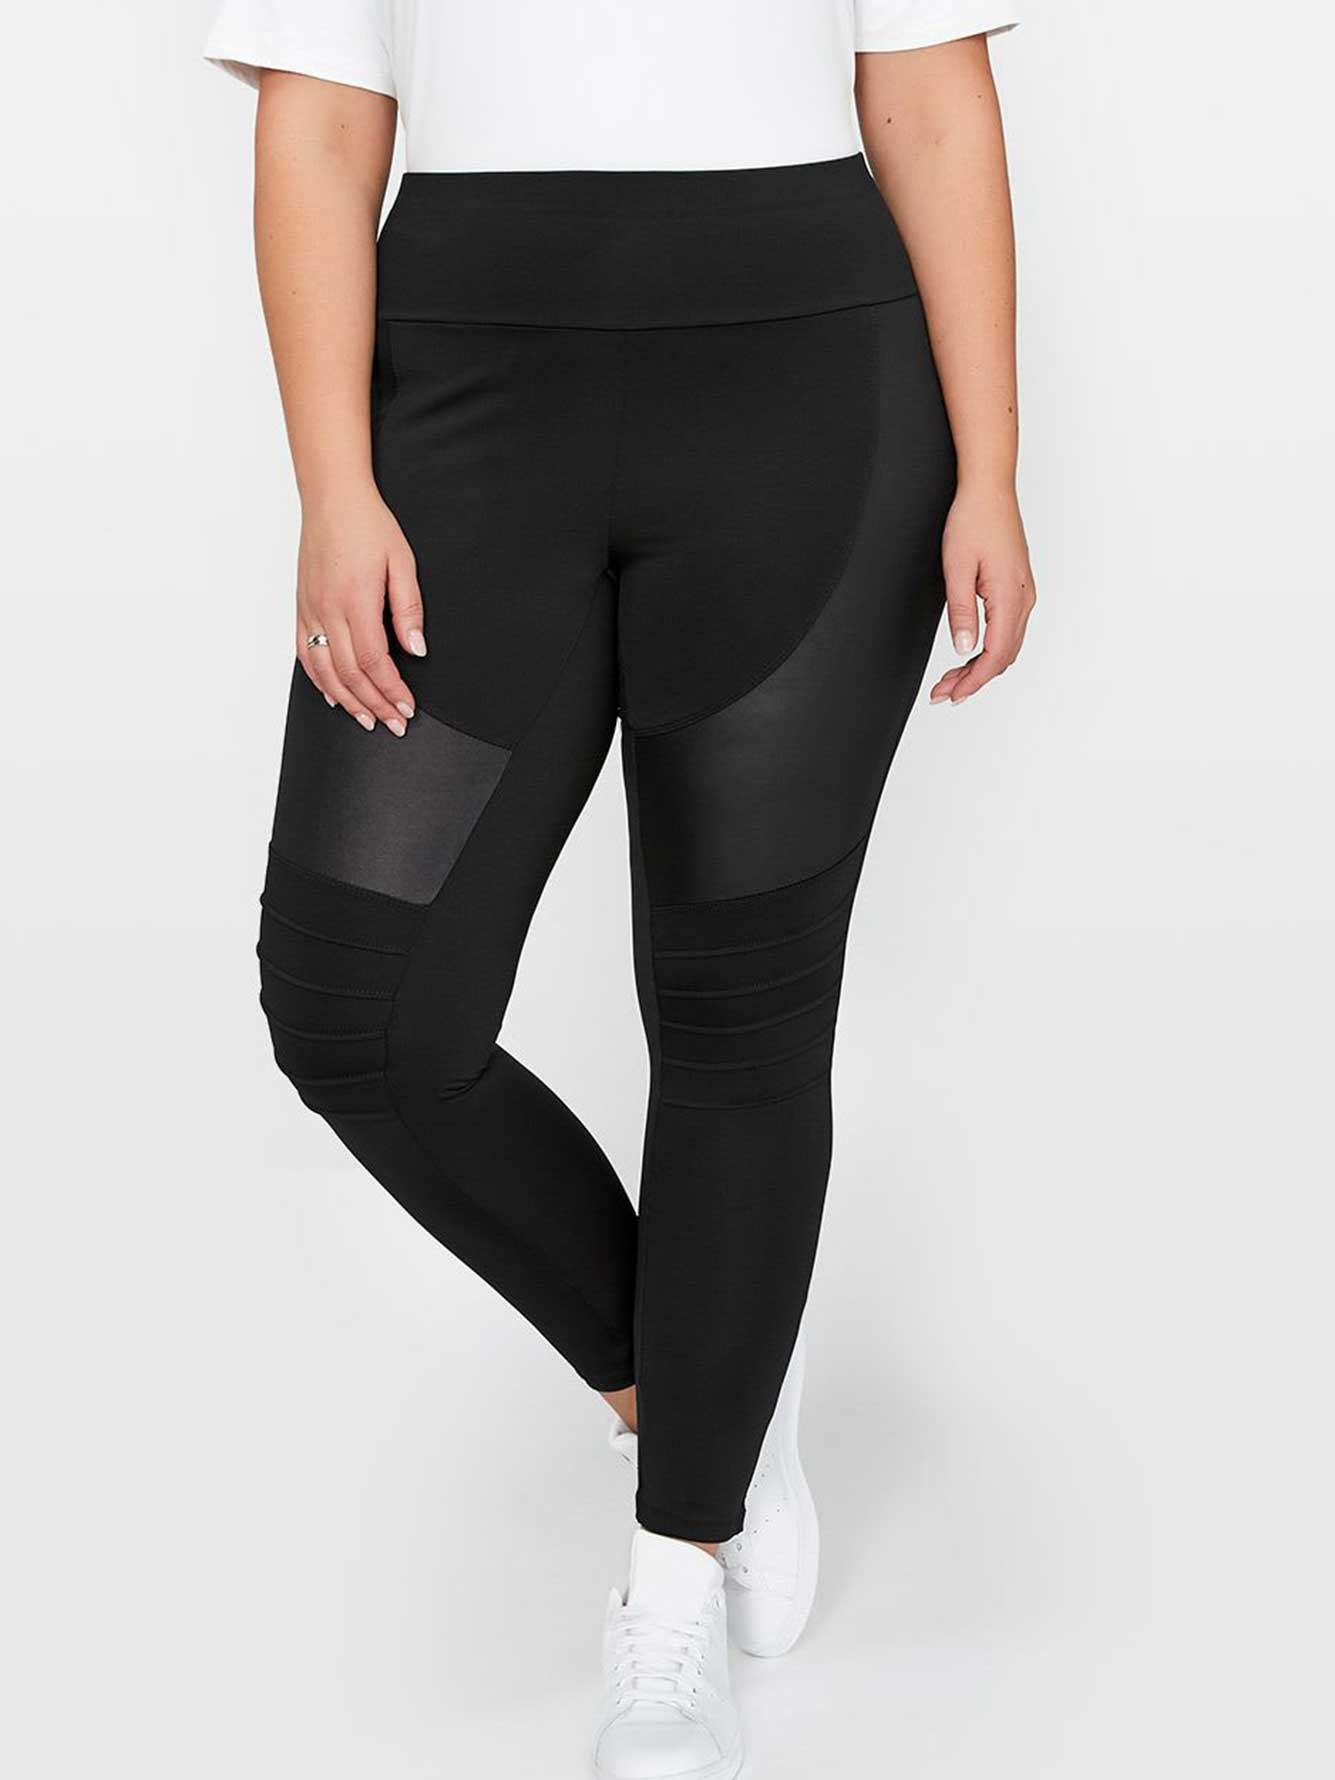 cd46b845df51b Nola x Jordyn Woods Moto Legging | Addition Elle